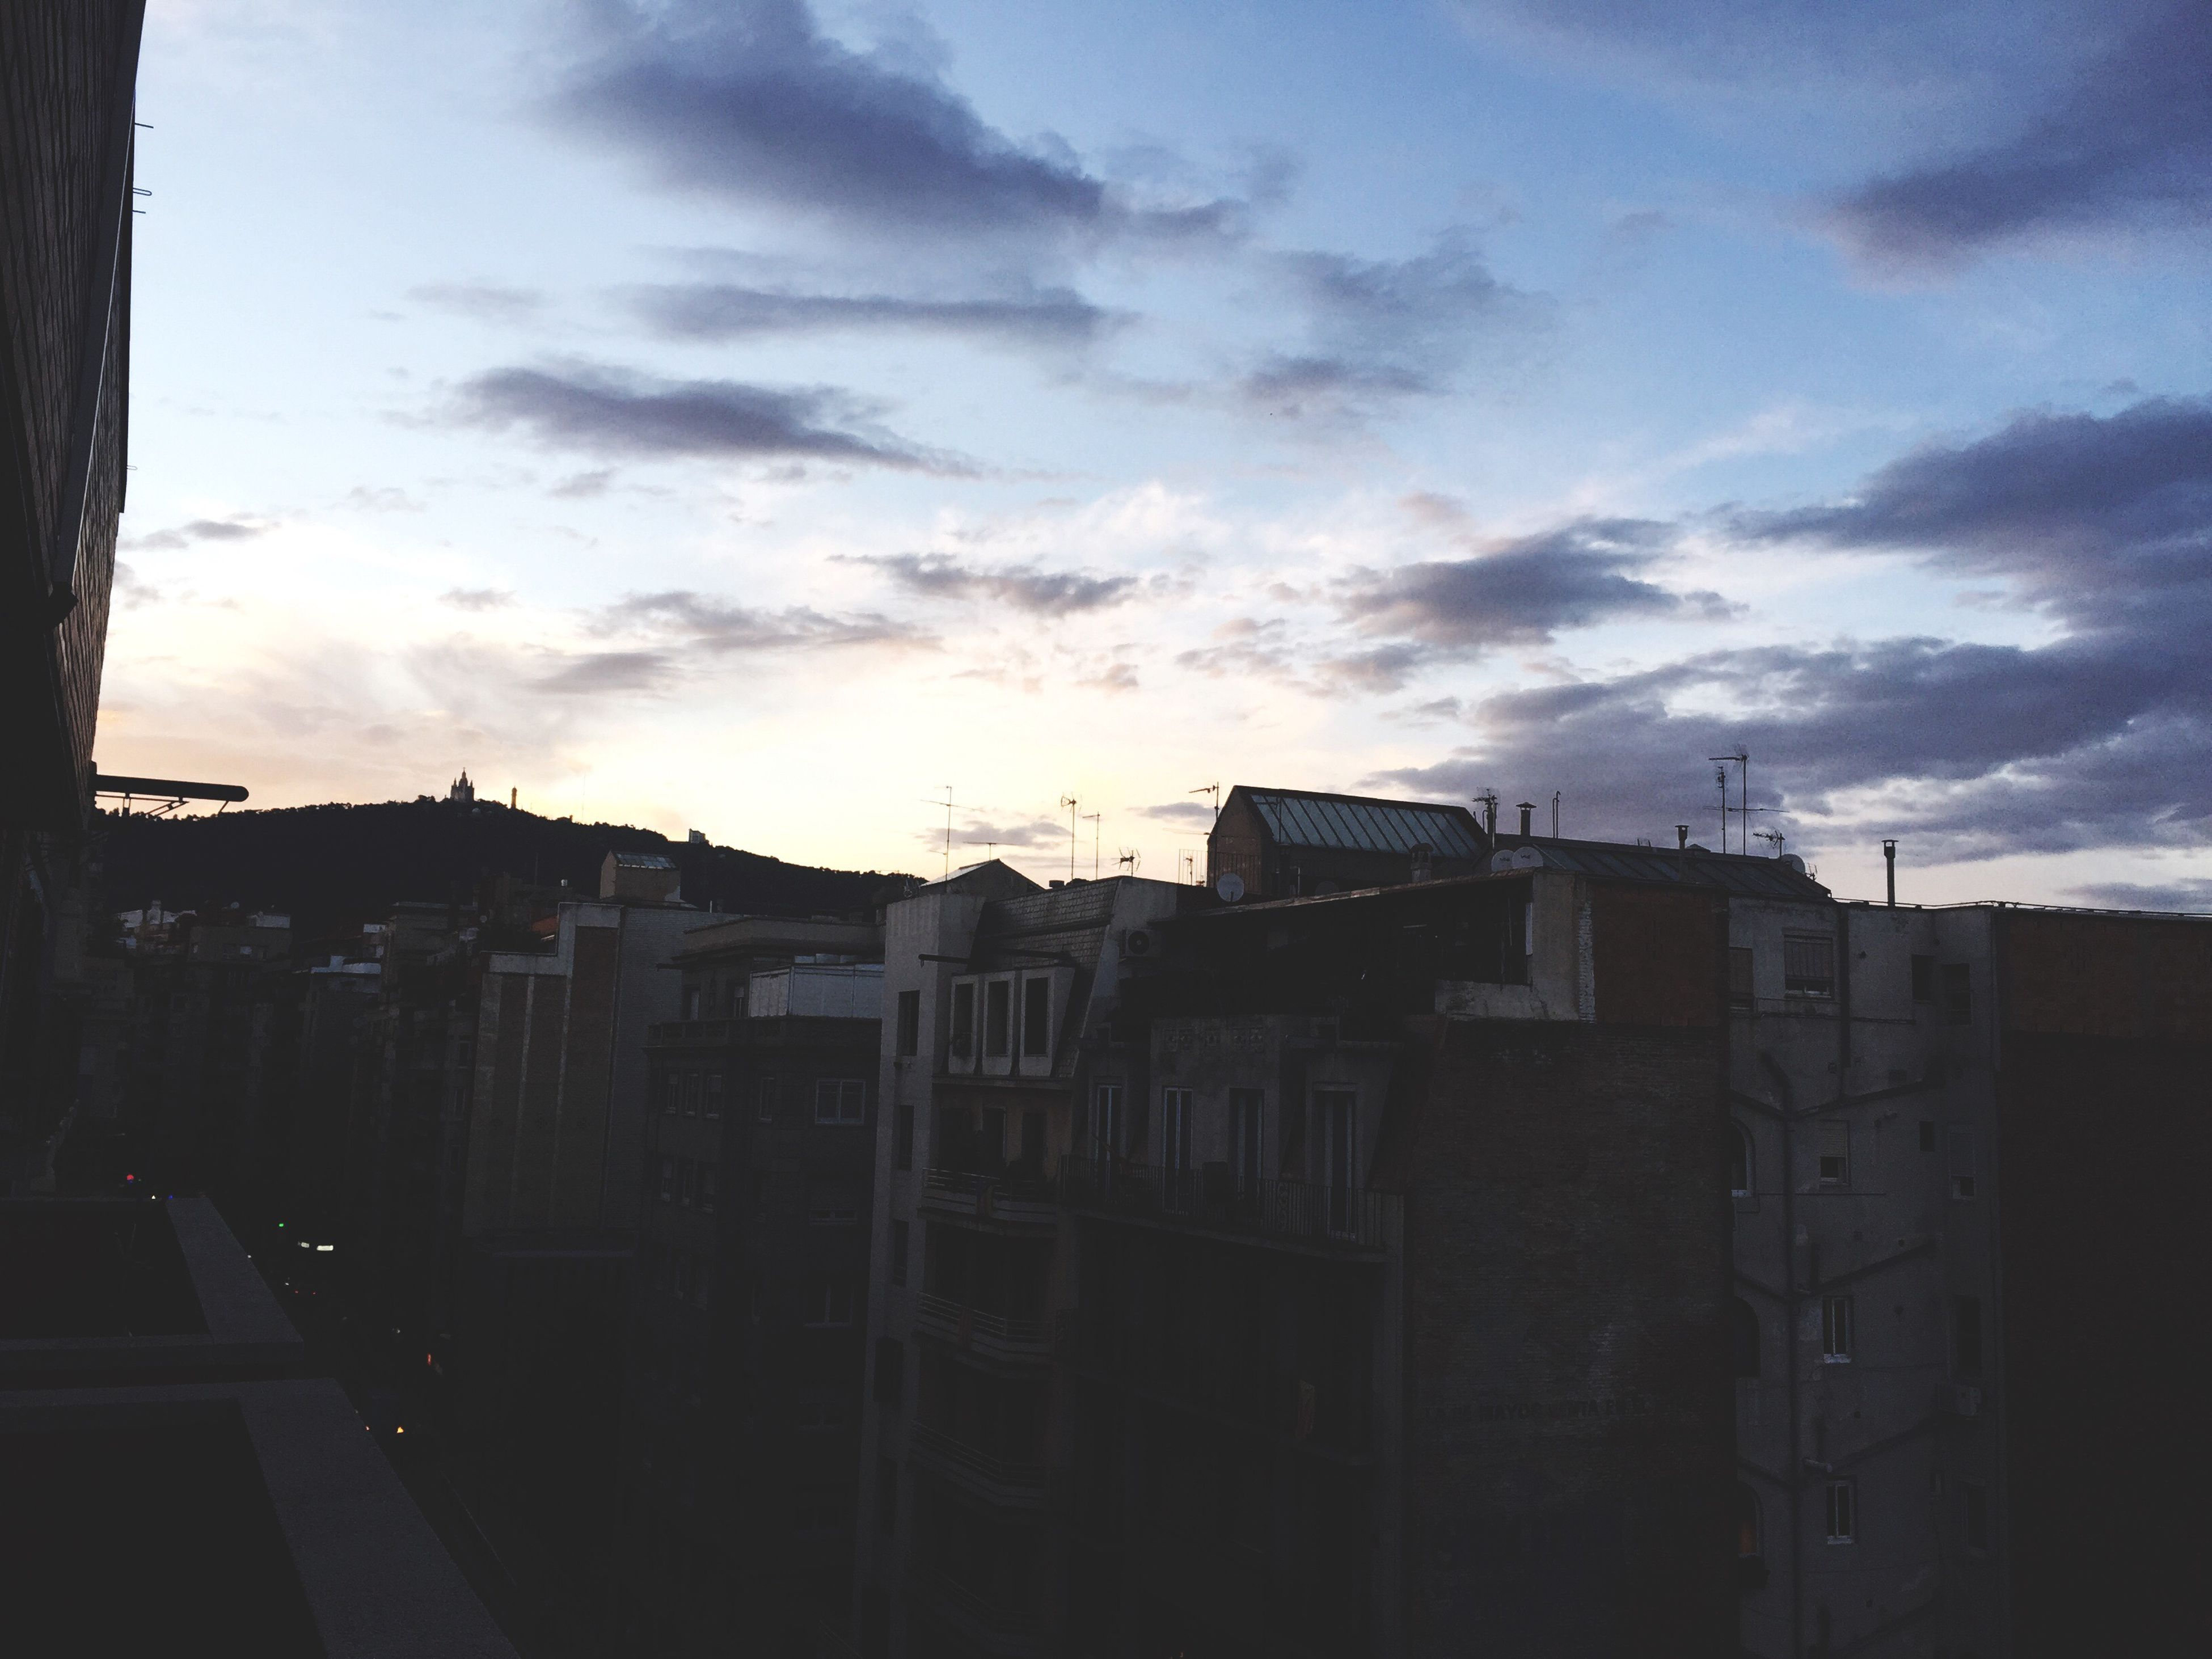 architecture, building exterior, built structure, sky, cloud - sky, sunset, building, cloud, city, residential structure, residential building, silhouette, cloudy, house, outdoors, no people, low angle view, sunlight, dusk, day